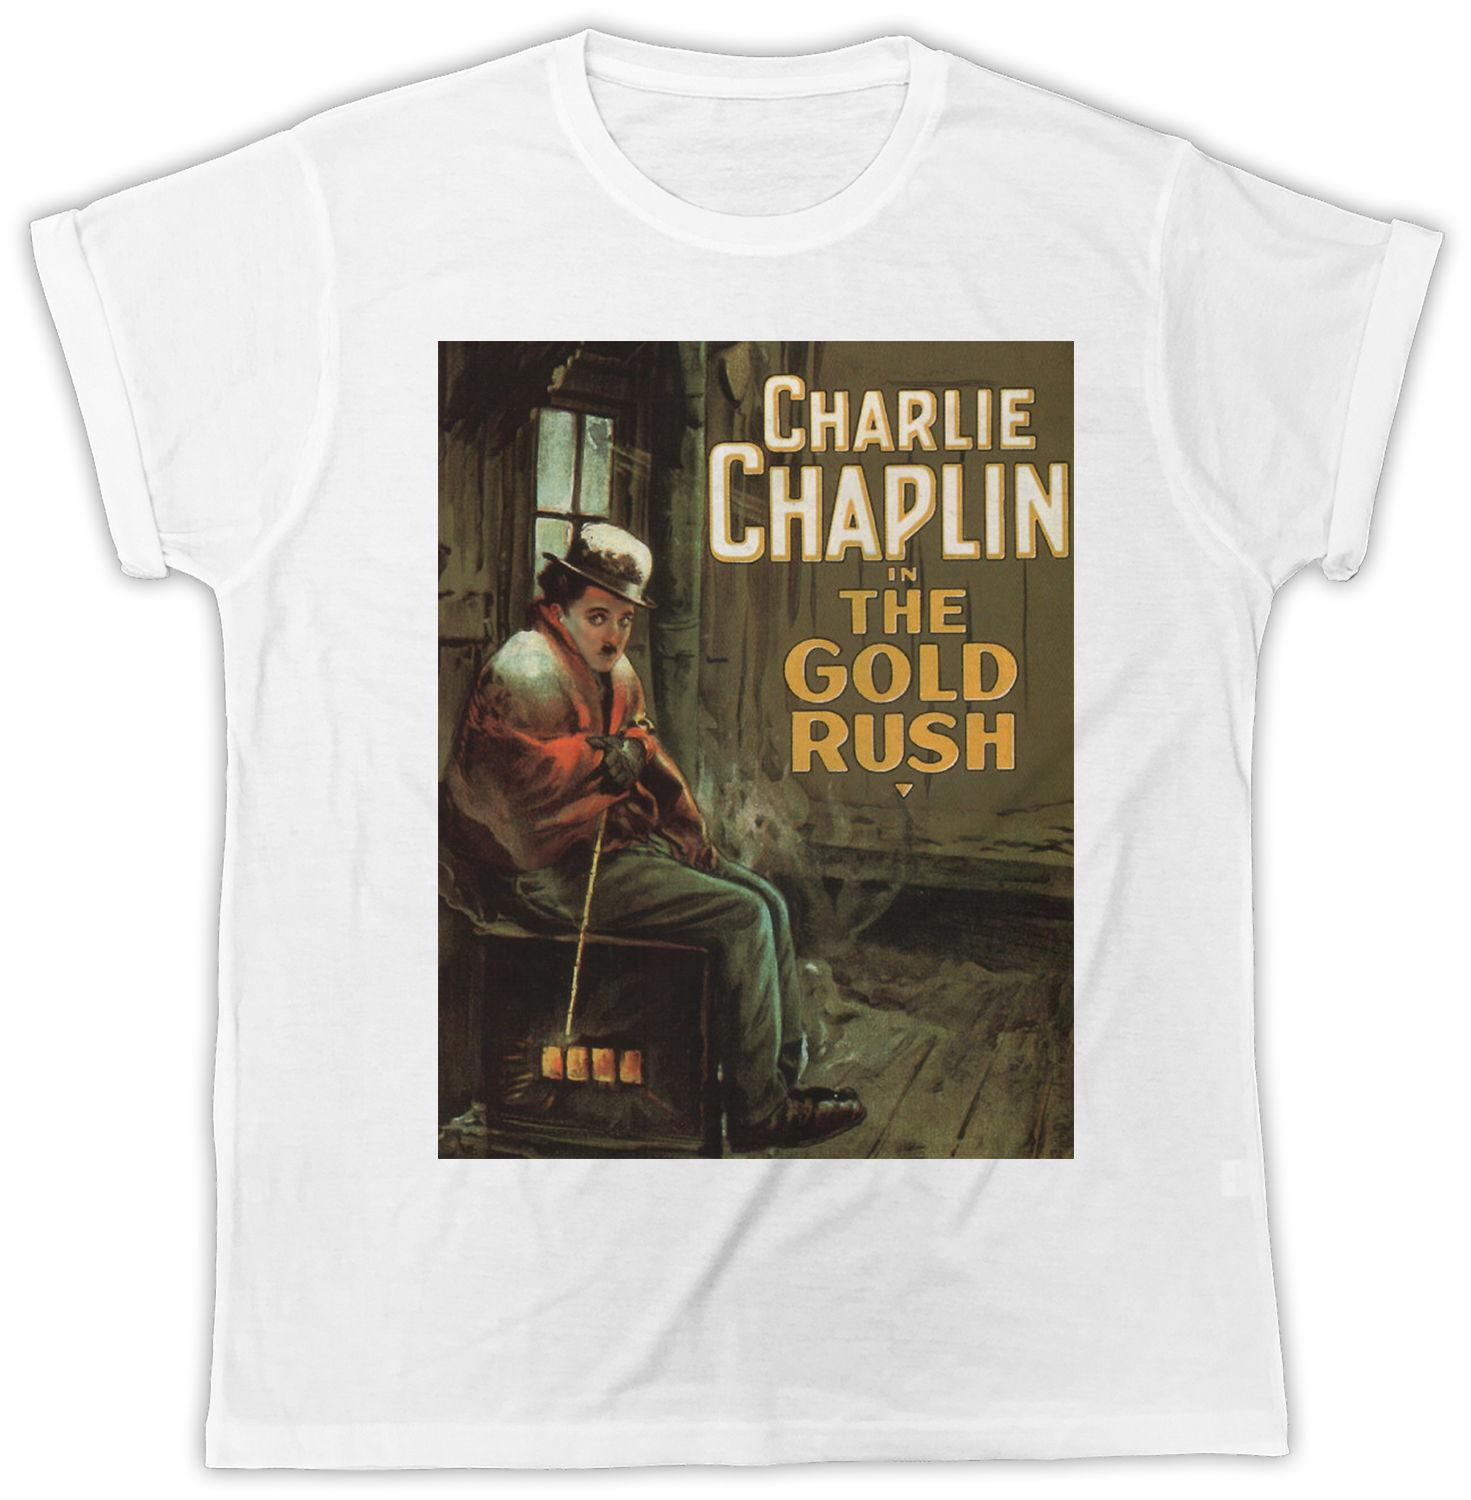 CHARLIE CHAPLIN MOVIE POSTER IDEAL BIRTHDAY GIFT DESIGNER COOL MENS T SHIRT Funny 100 Cotton Shirt Tees Cool Shirts From Dredcup 1624